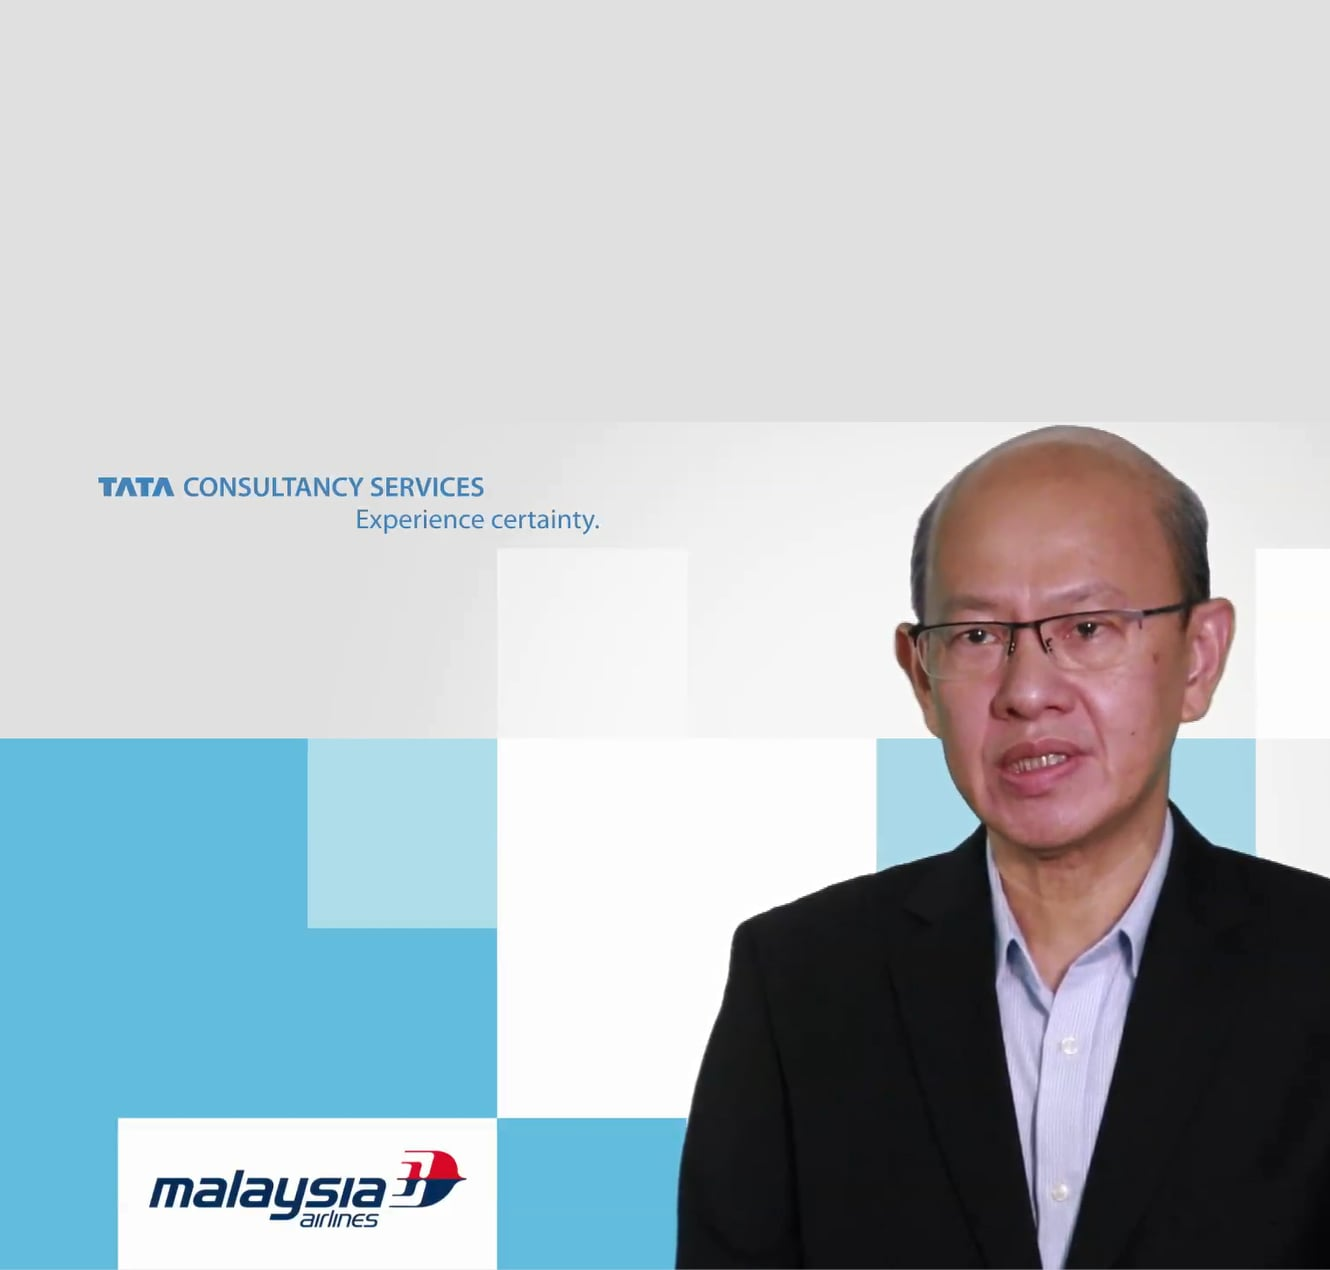 Malaysia Airlines Reaches the Cloud with TCS